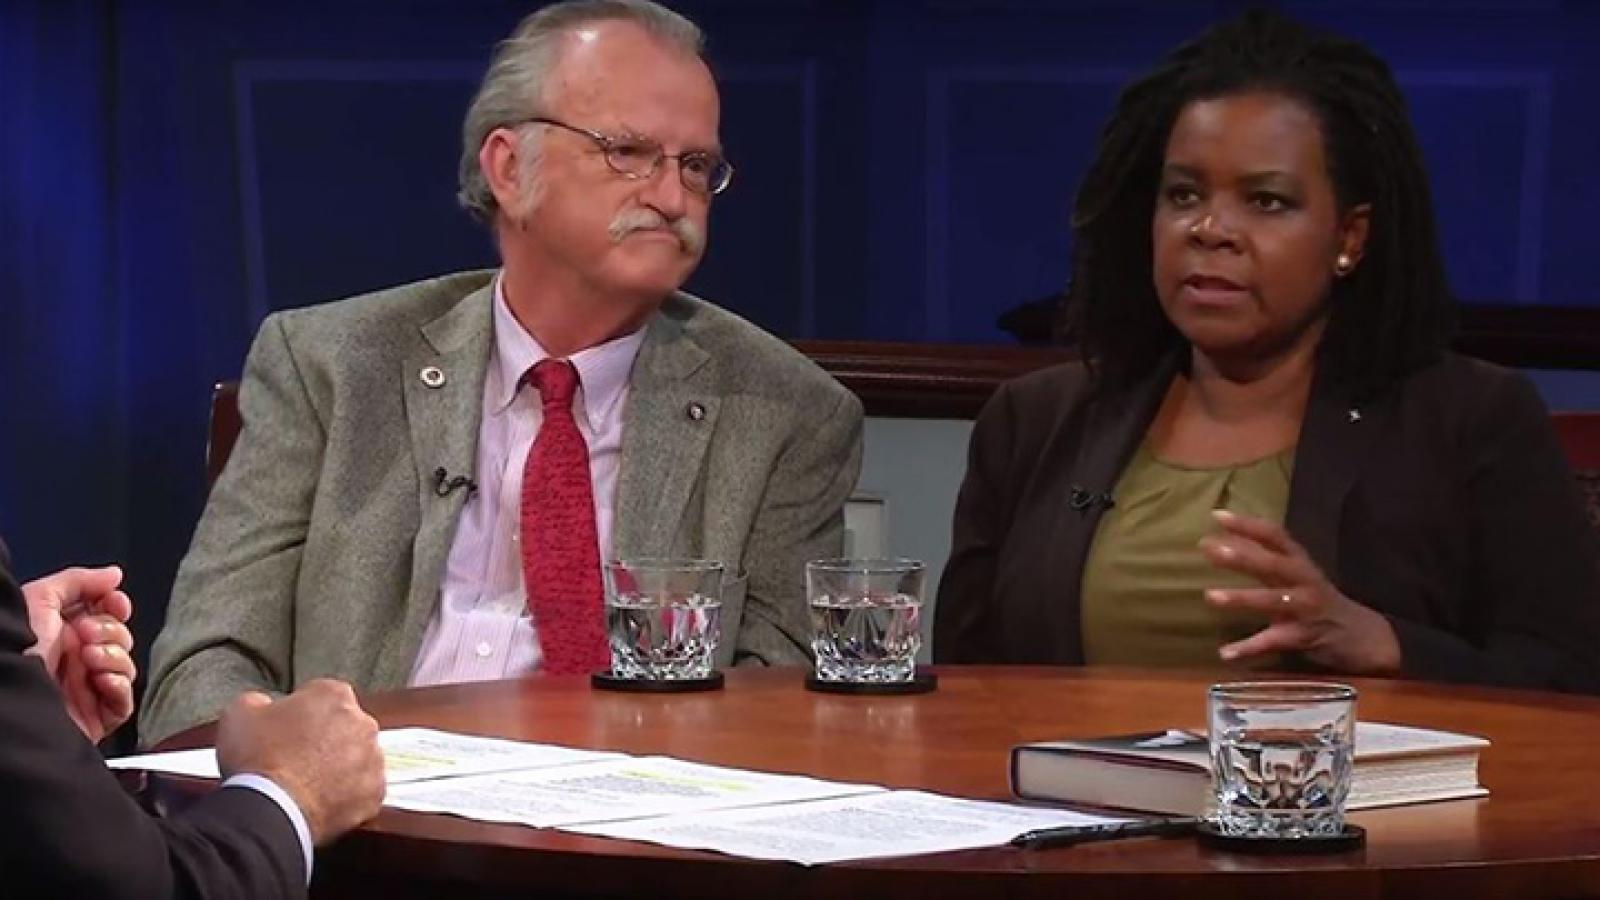 Annette Gordon-Reed and Peter Onuf discuss Thomas Jefferson's view of slavery